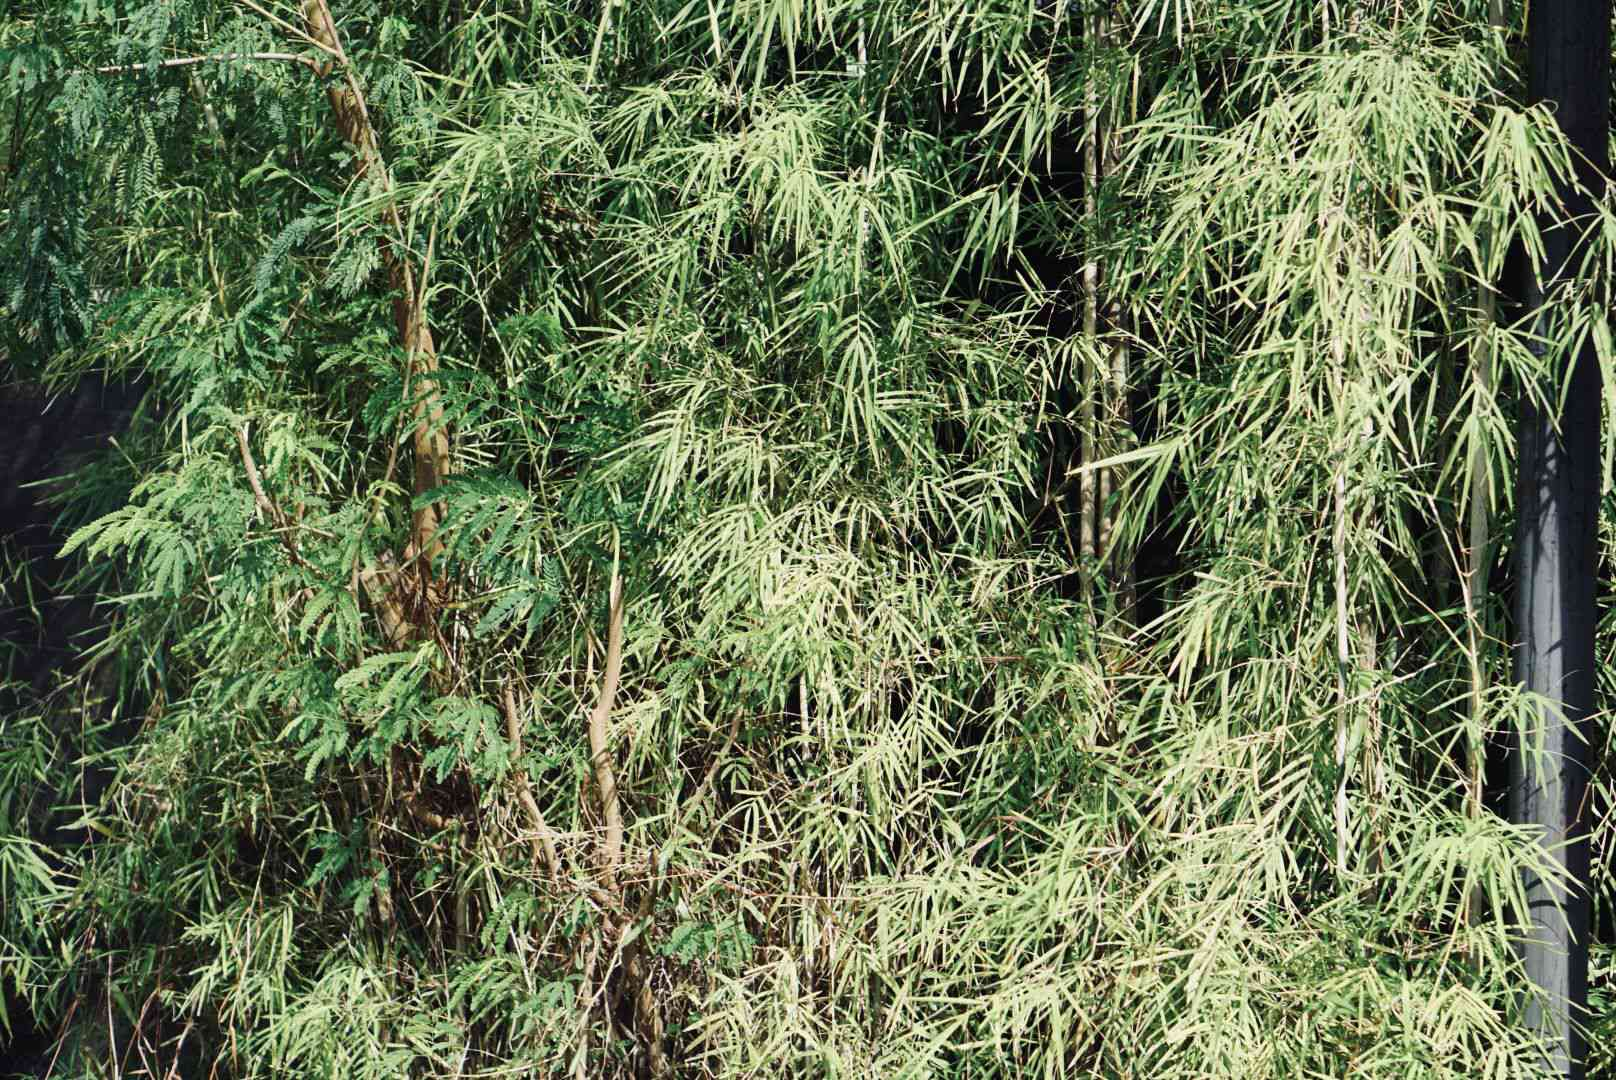 Bamboo ornamental grass with tall stems and hanging culms in sunlight